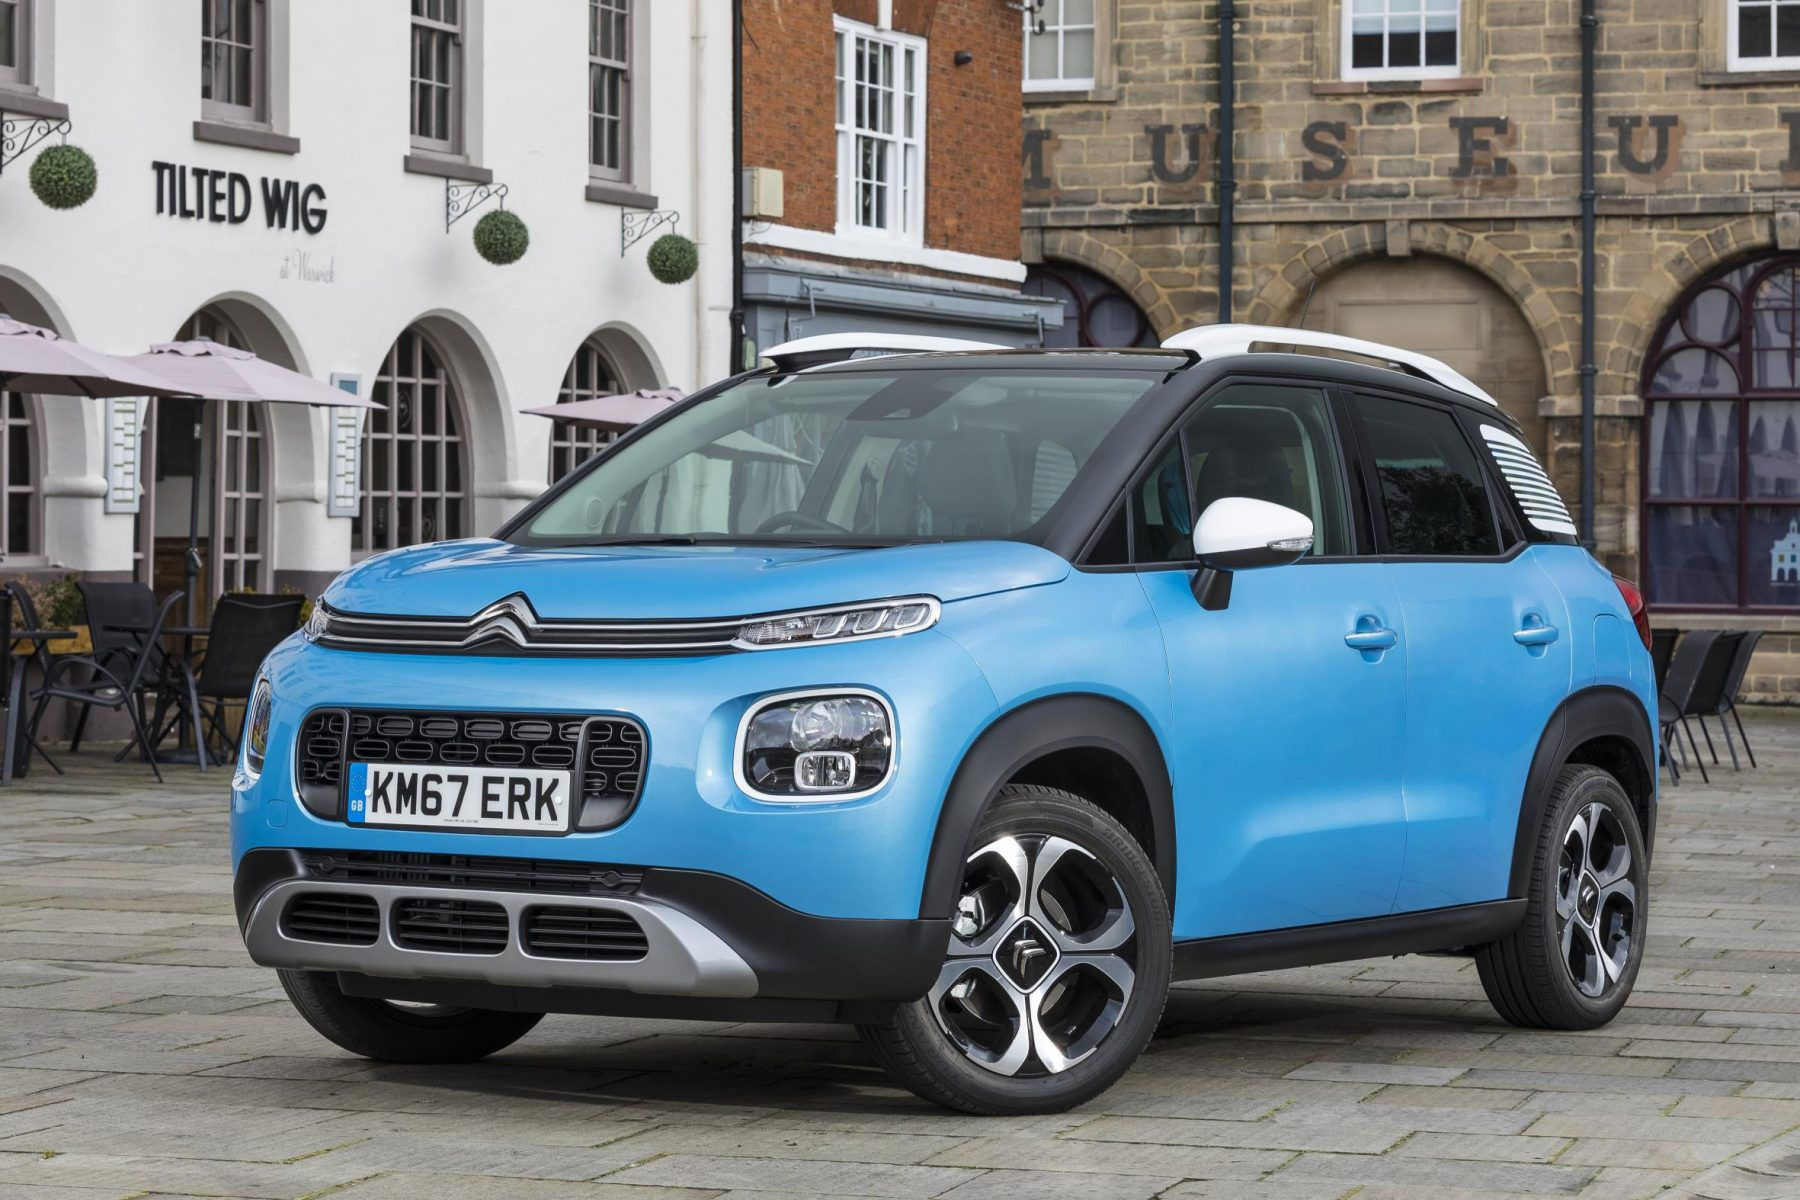 Citroen C3 Aircross jacked up city car in blue